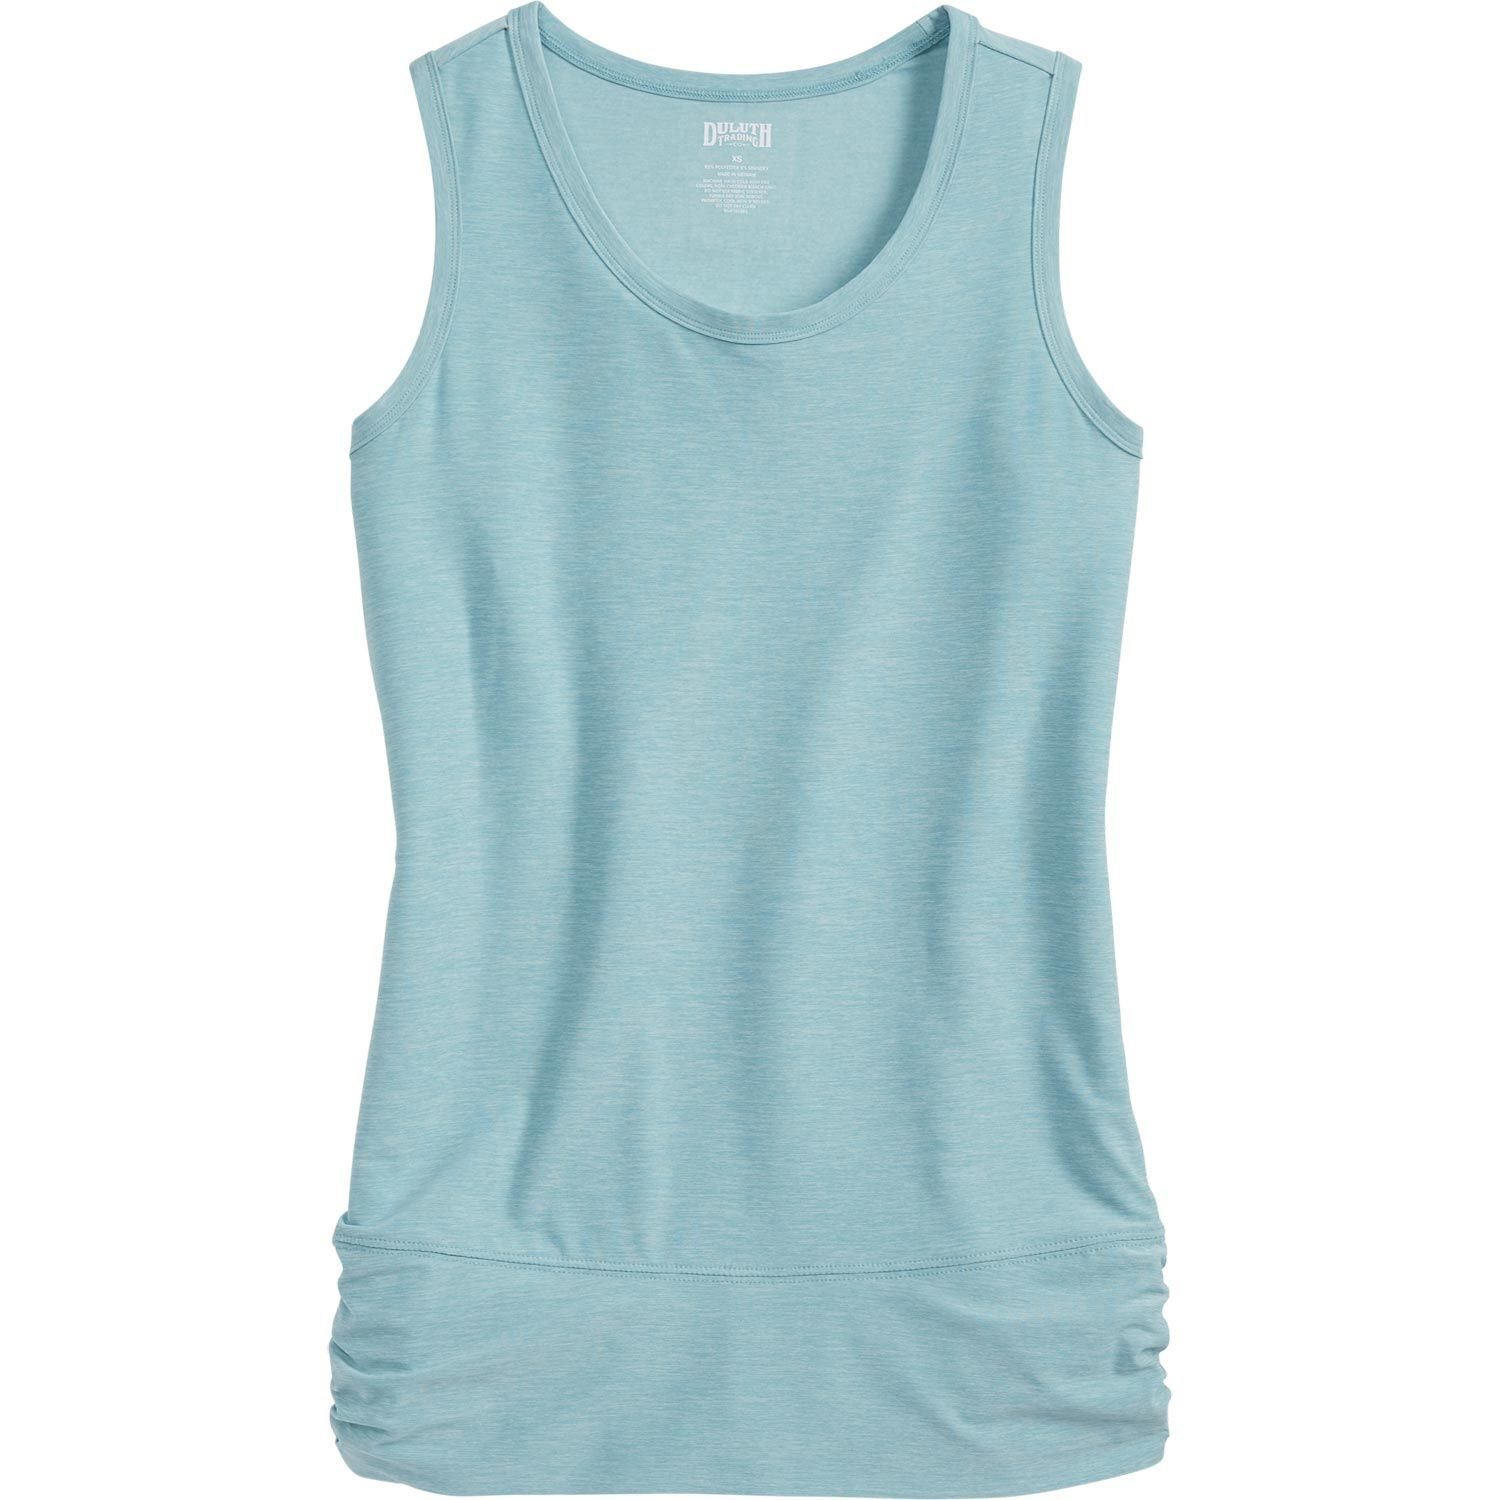 Summer Heat Is No Feat With Armachillo Cooling Racerback Tank